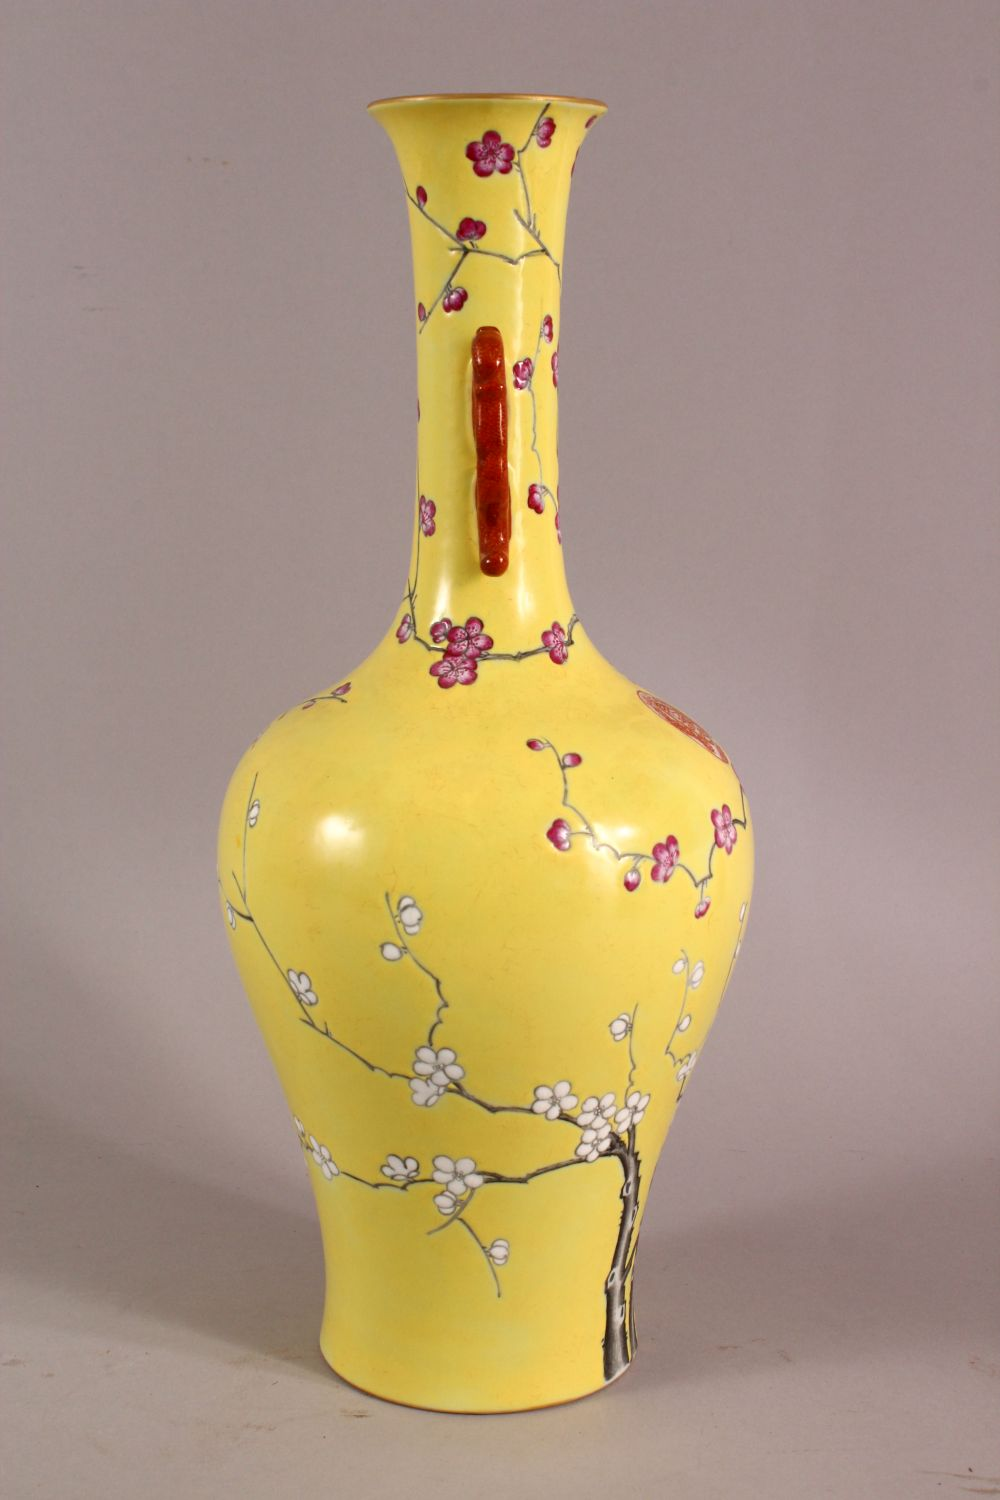 A CHINESE YELLOW GLAZED FAMILLE ROSE PORCELAIN VASE, decorated with birds in trees, with a mark - Image 4 of 9